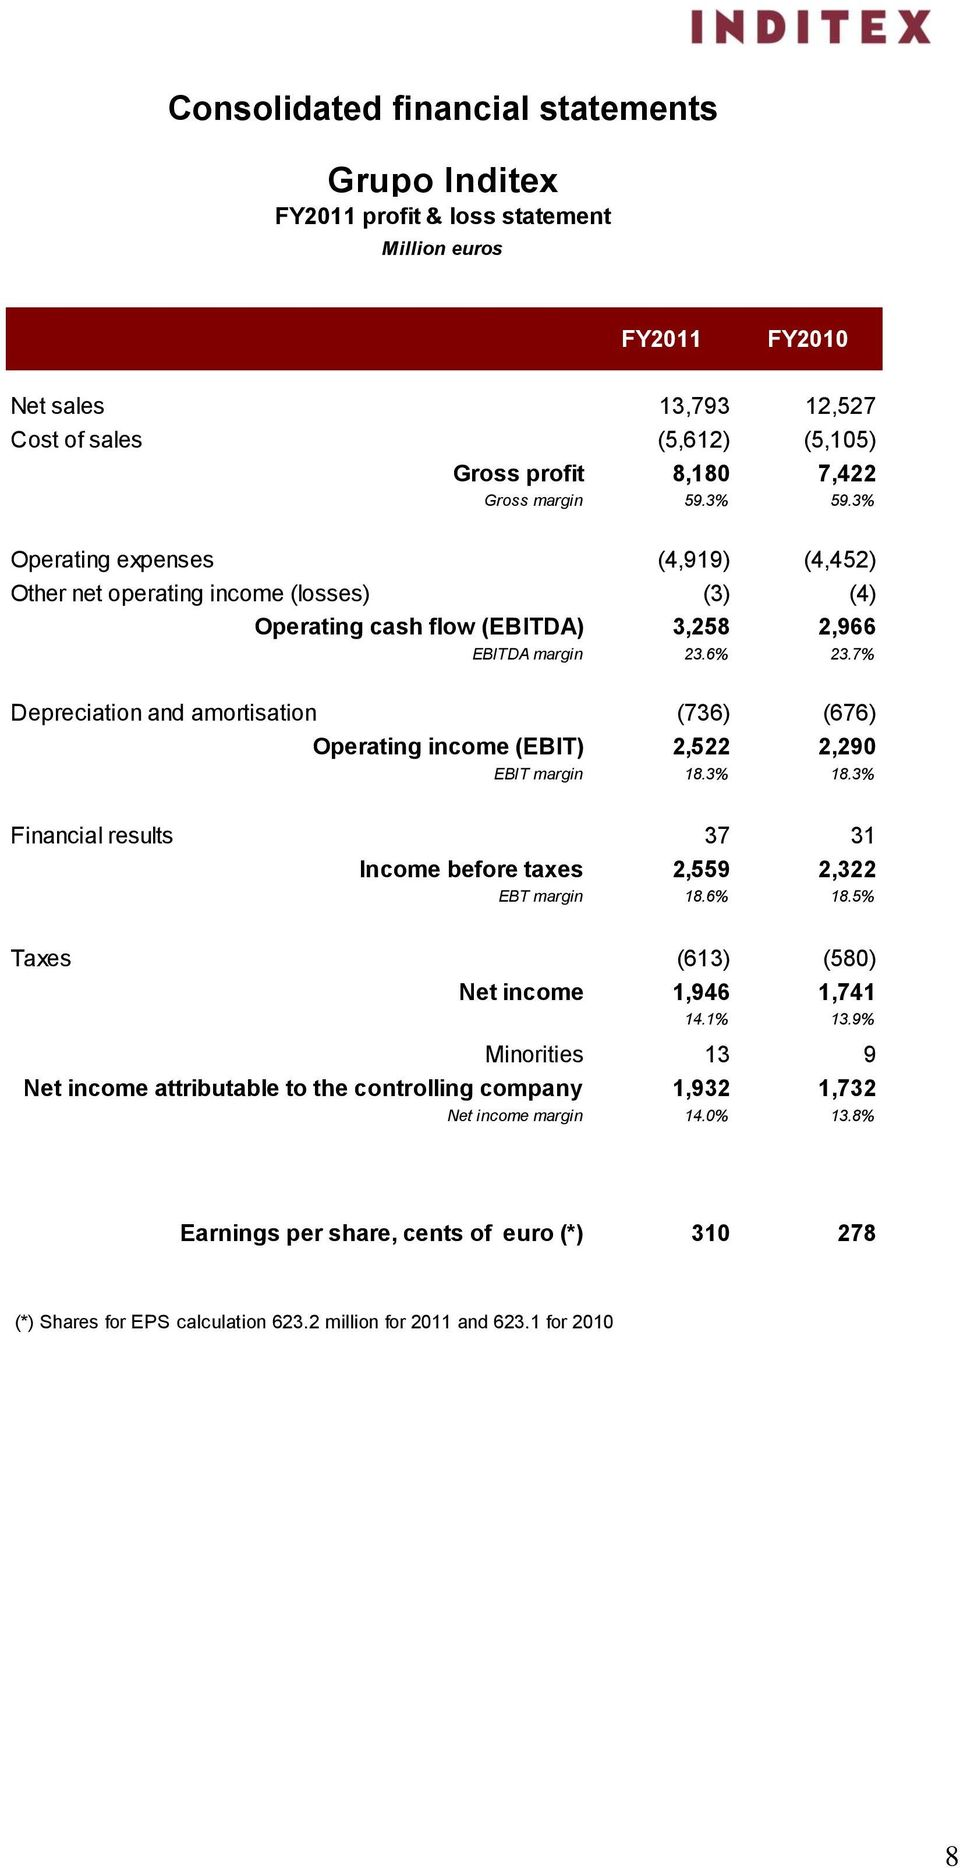 7% Depreciation and amortisation (736) (676) Operating income (EBIT) 2,522 2,290 EBIT margin 18.3% 18.3% Financial results 37 31 Income before taxes 2,559 2,322 EBT margin 18.6% 18.